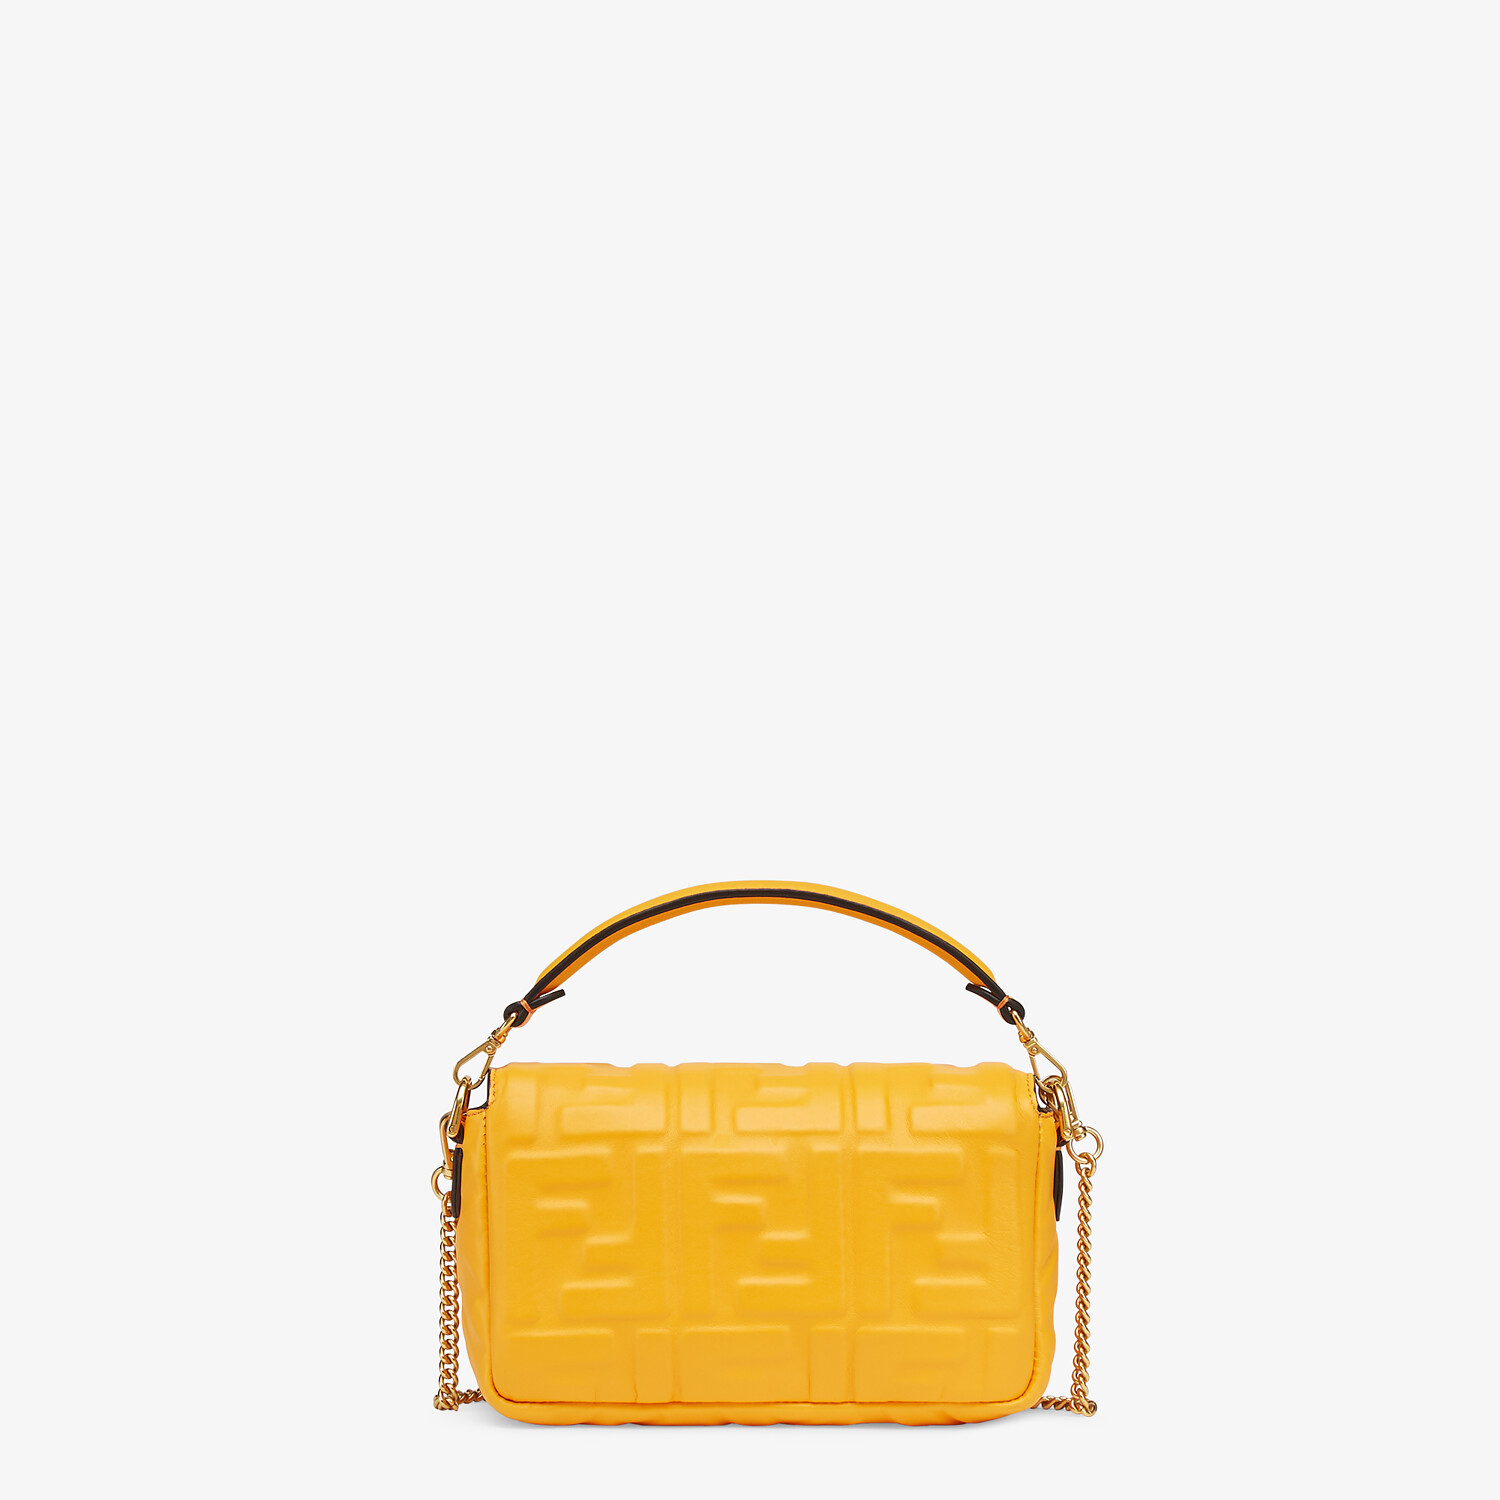 FENDI BAGUETTE - Orange nappa leather bag featuring the FF motif - view 4 detail